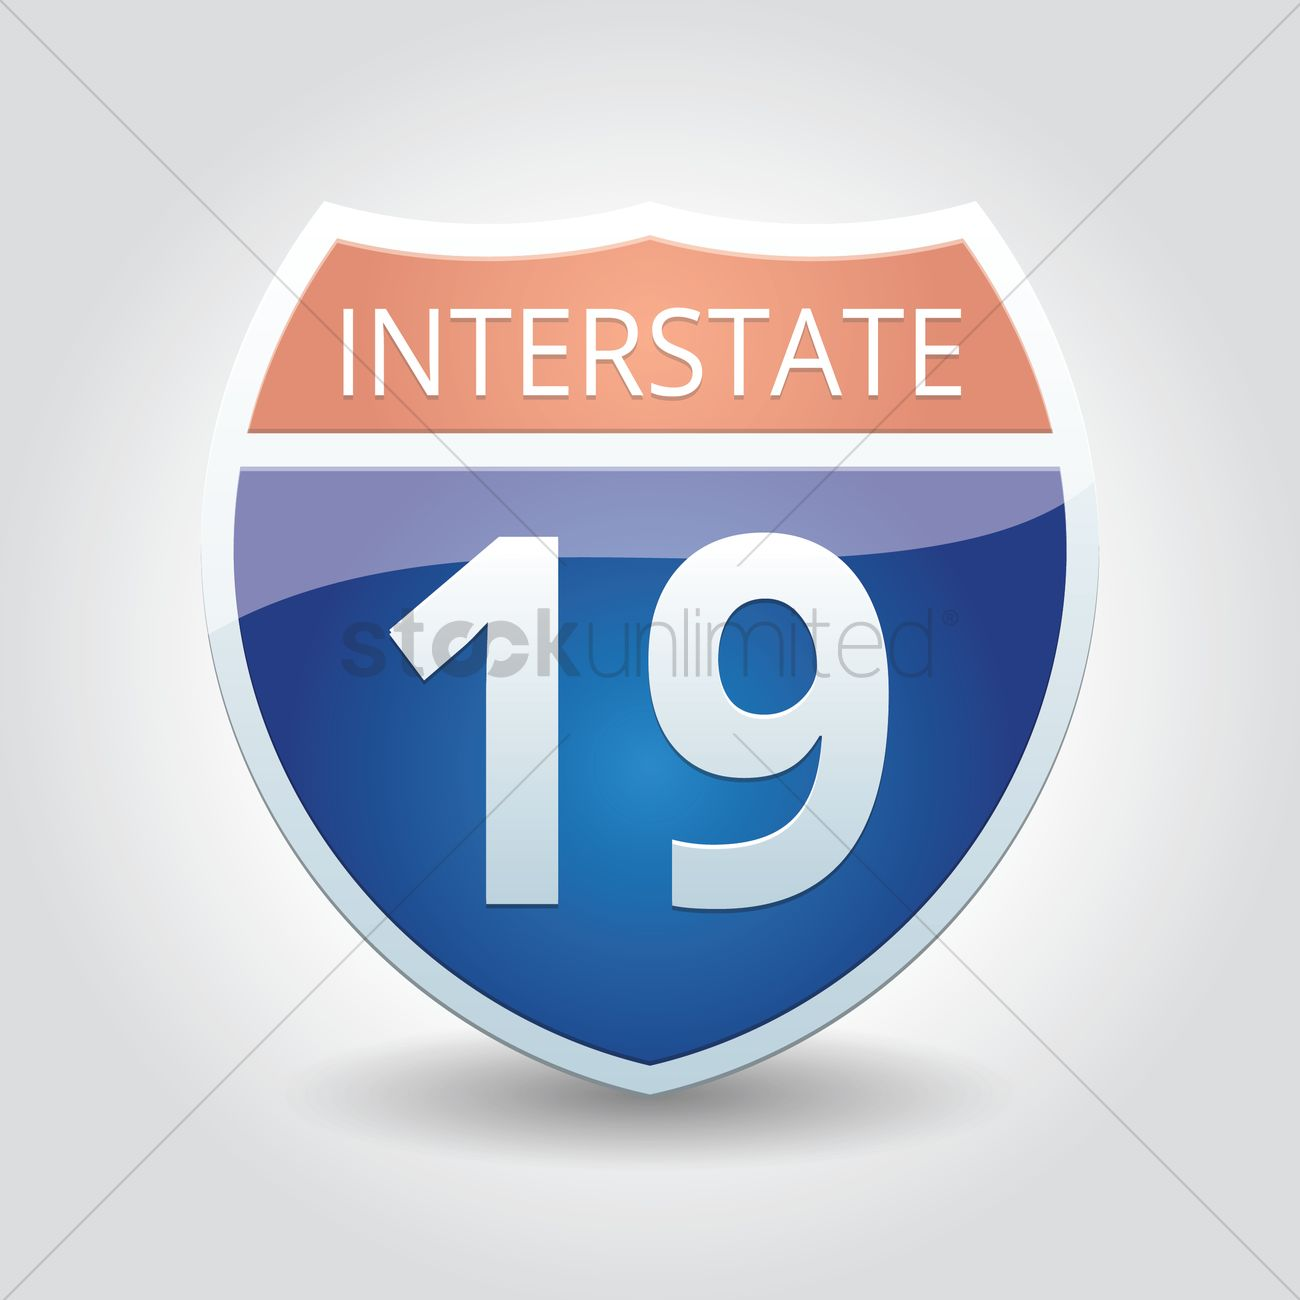 1300x1300 Interstate 19 Sign Vector Image